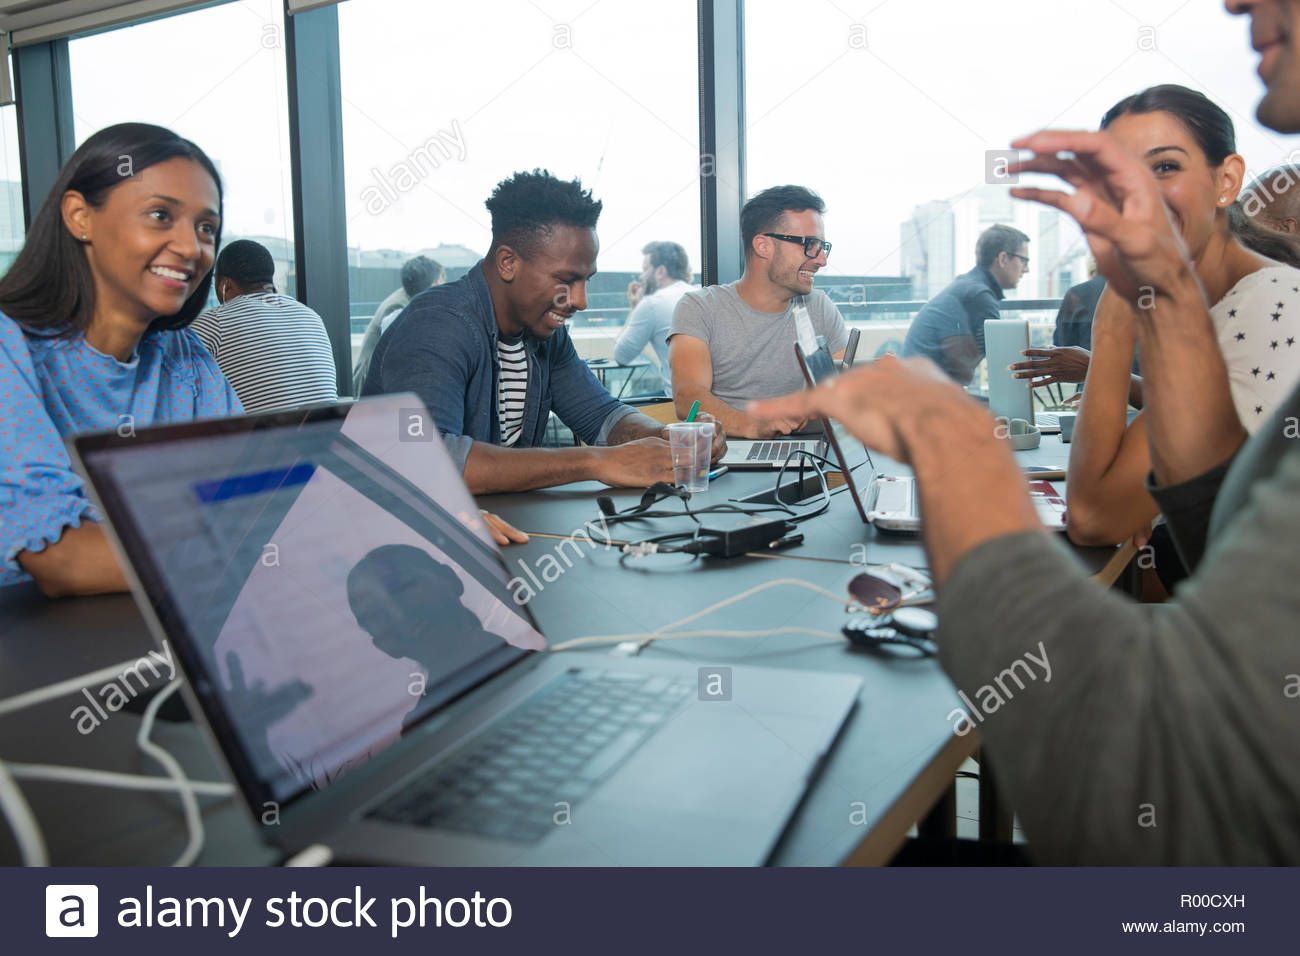 Colleagues using laptops during meeting Stock Photo